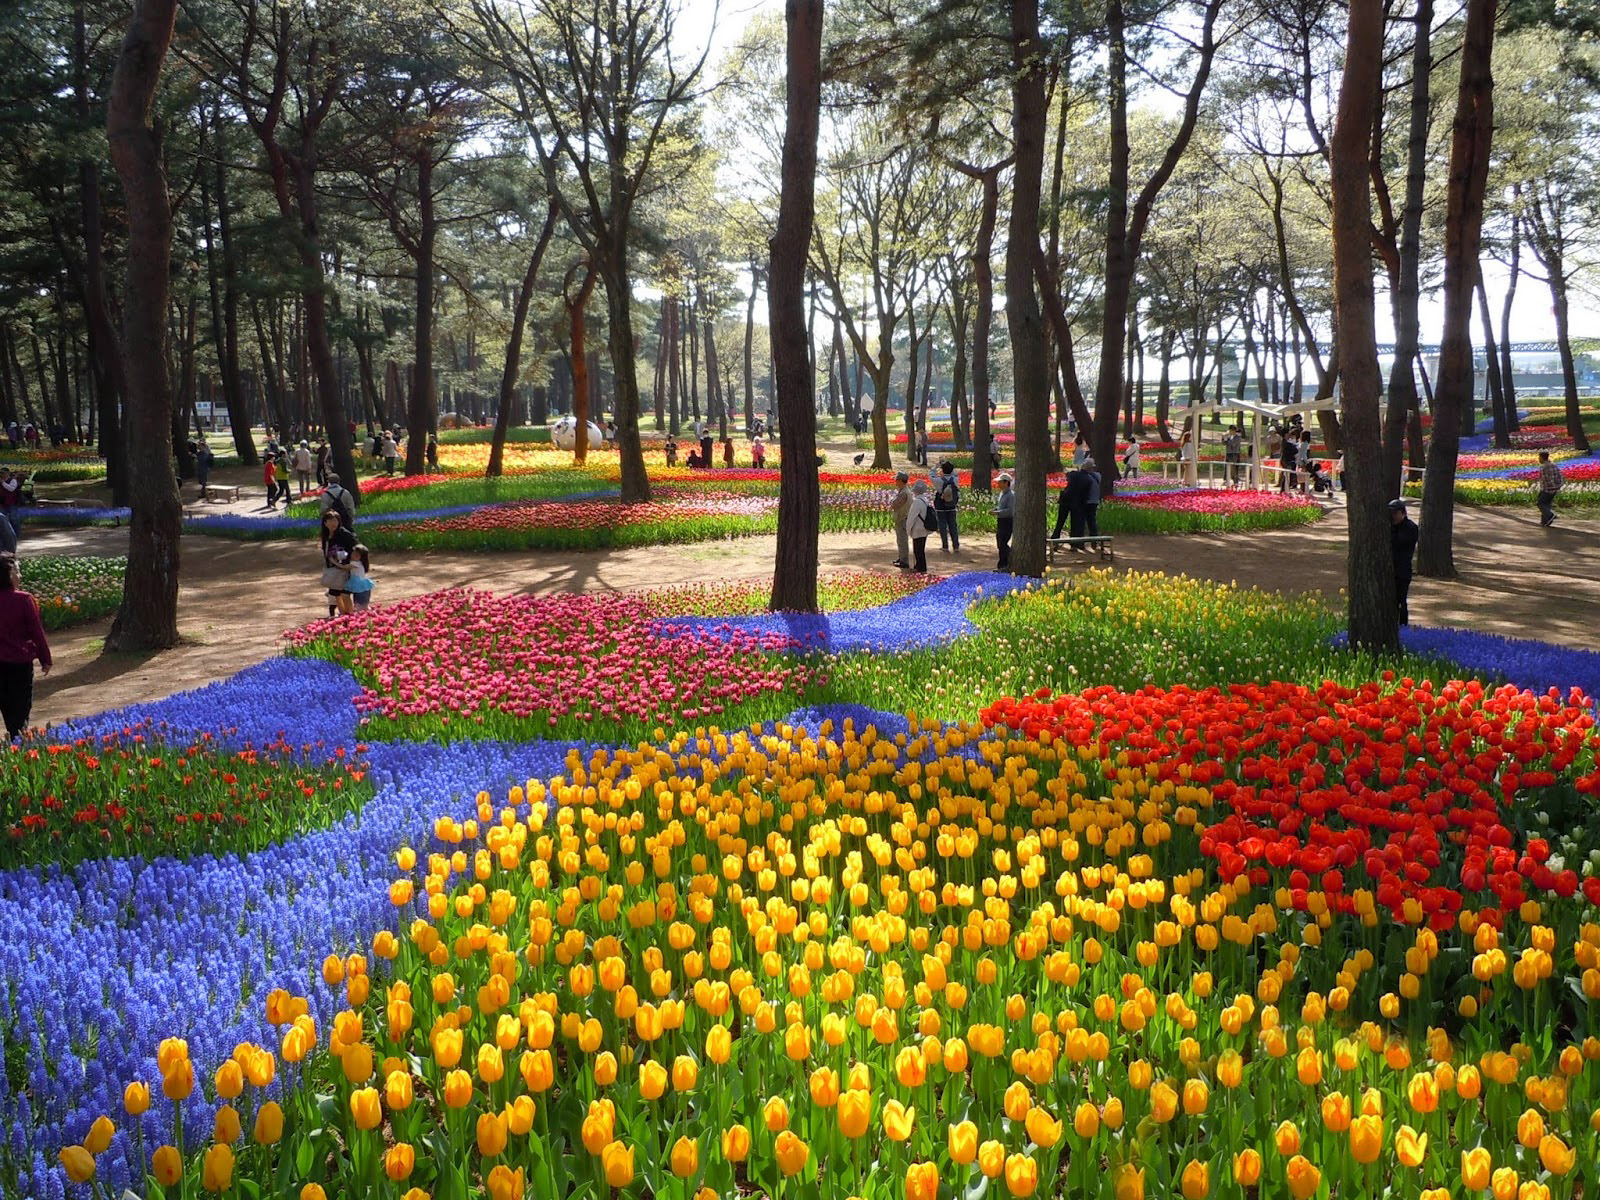 Tulips at the Hitachi Seaside Park in Japan